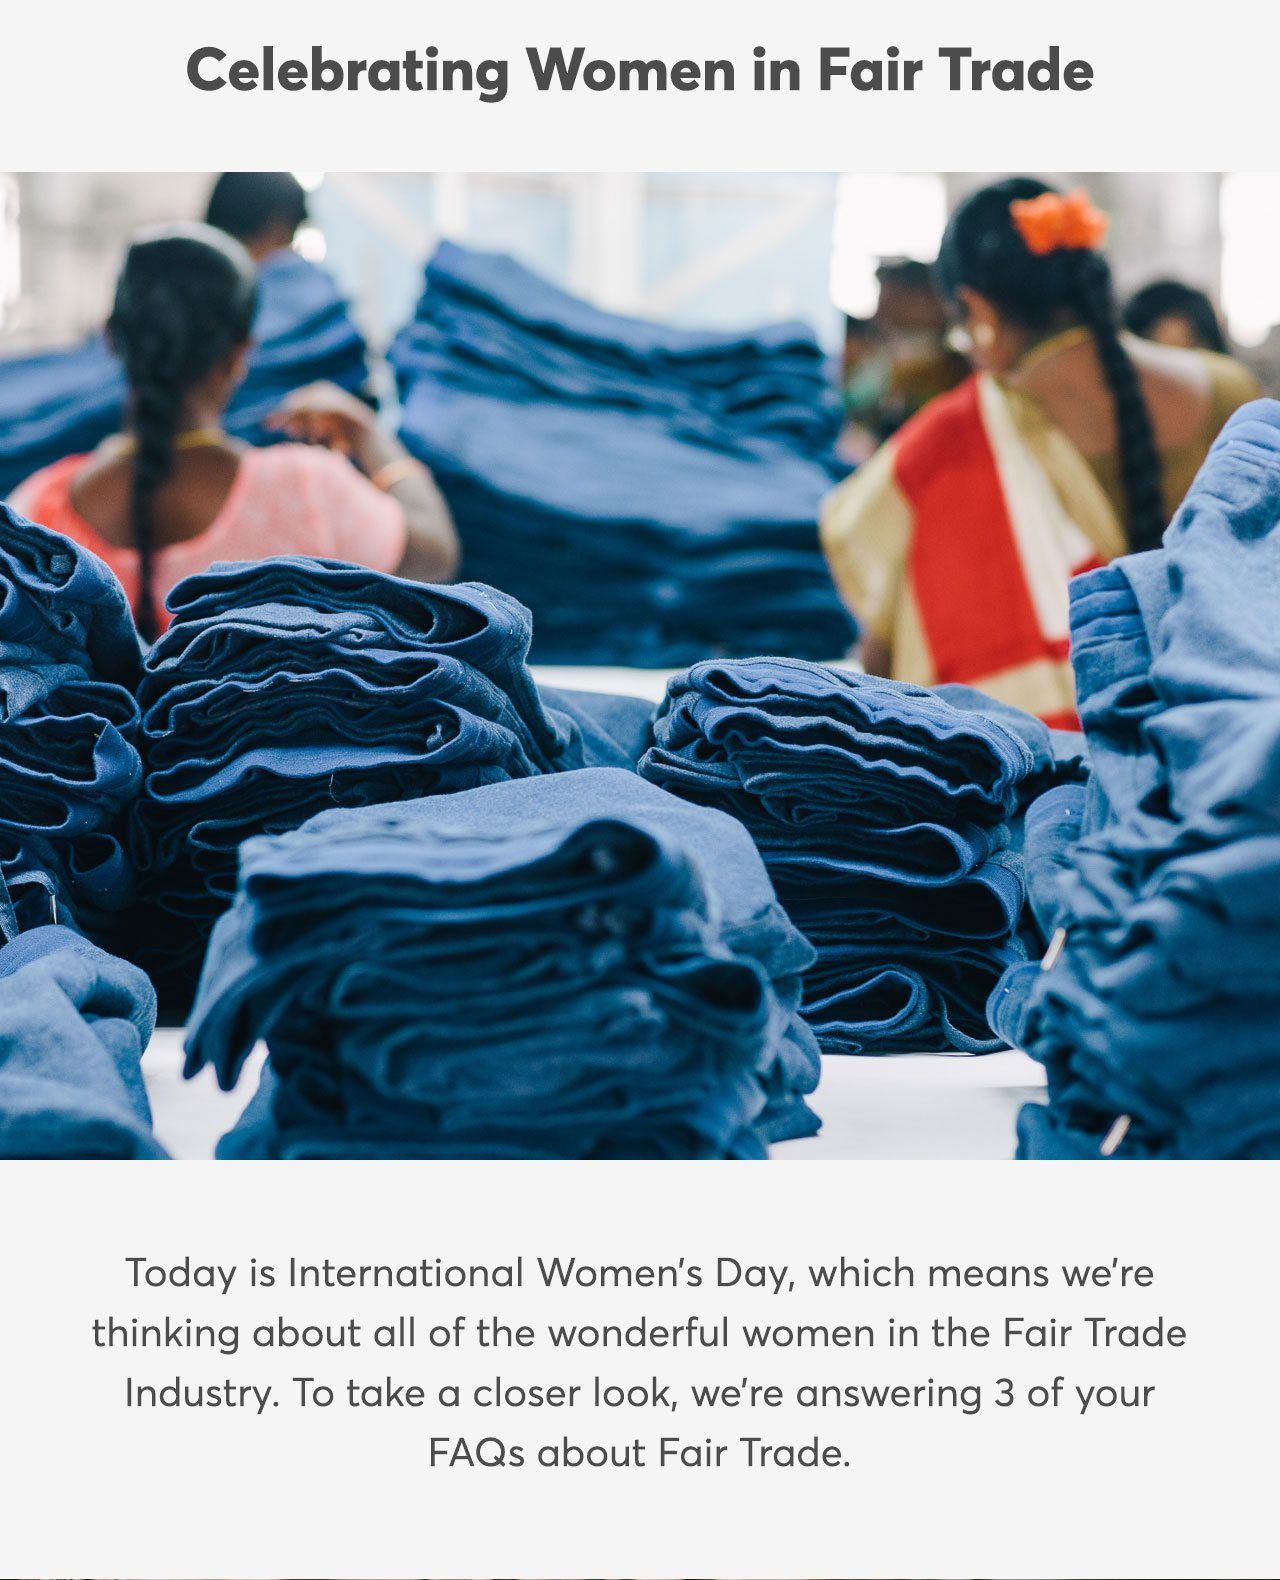 Celebrating Women in Fair Trade